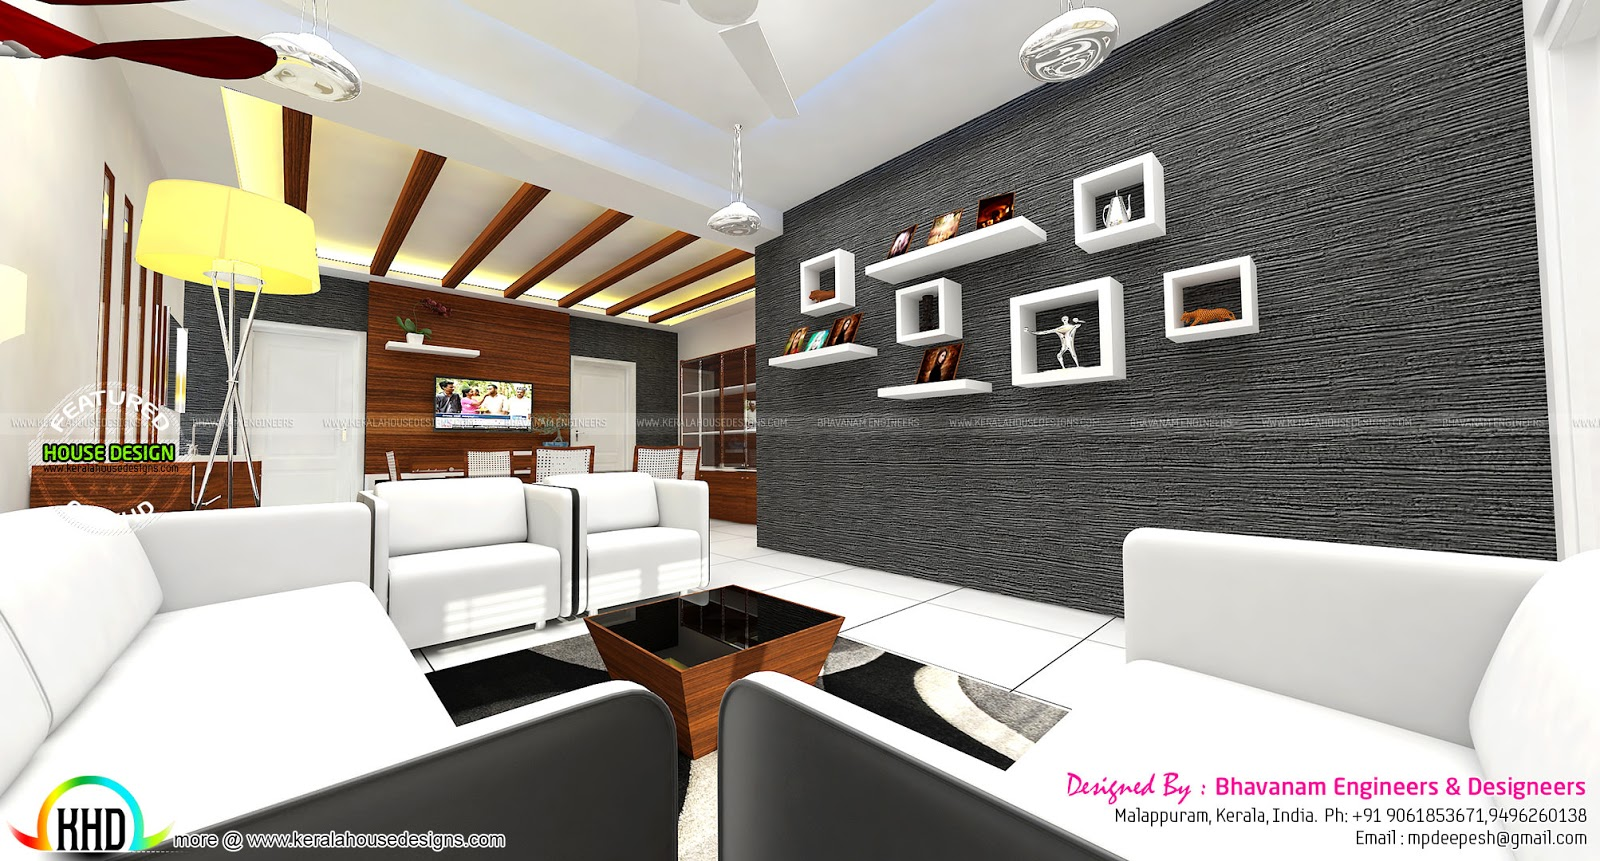 Living room interior decors ideas kerala home design and for Designers room